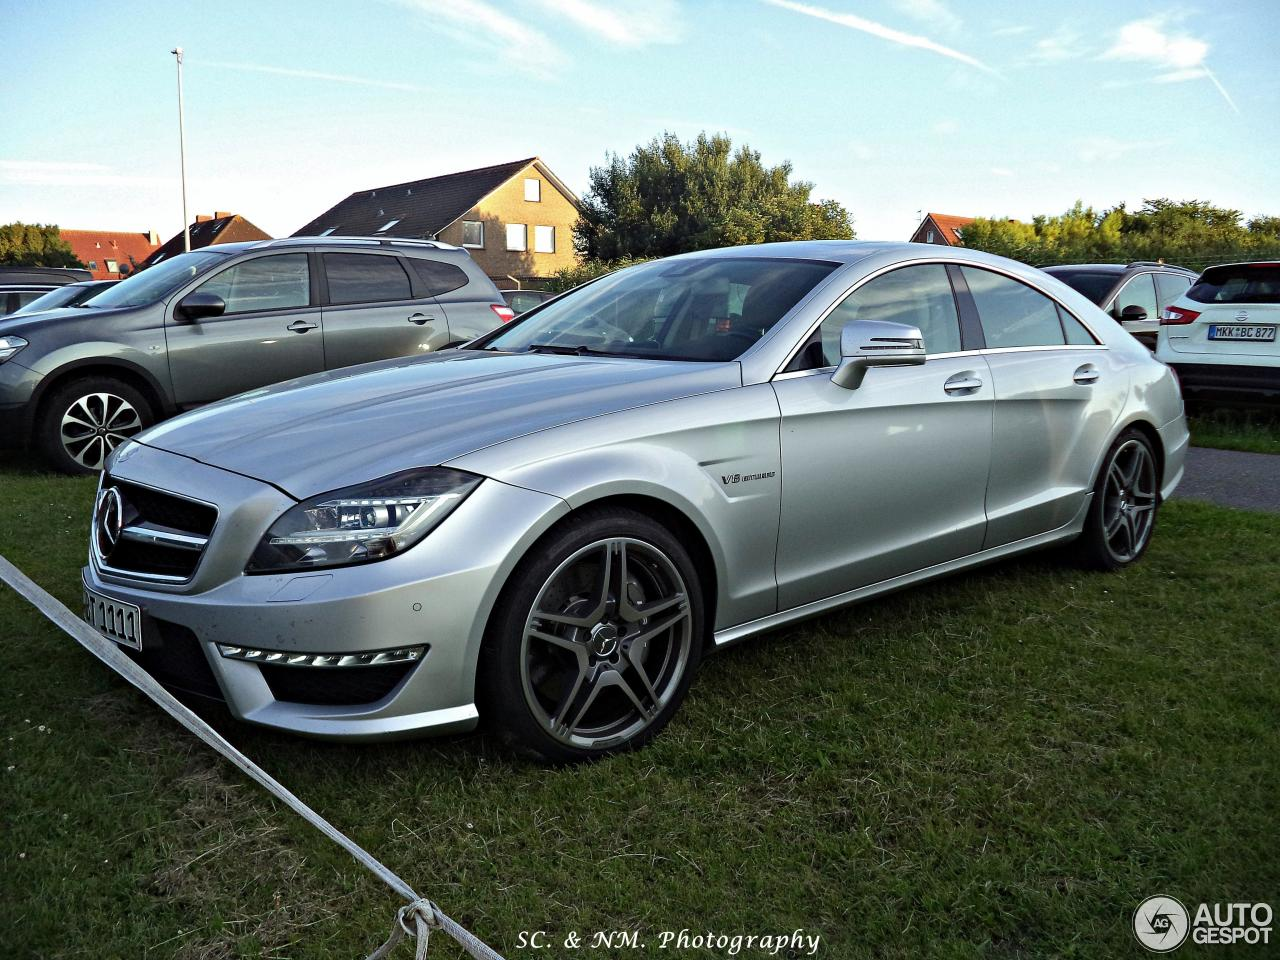 Mercedes benz cls 63 amg s c218 29 january 2016 autogespot for Mercedes benz cls 63 amg price